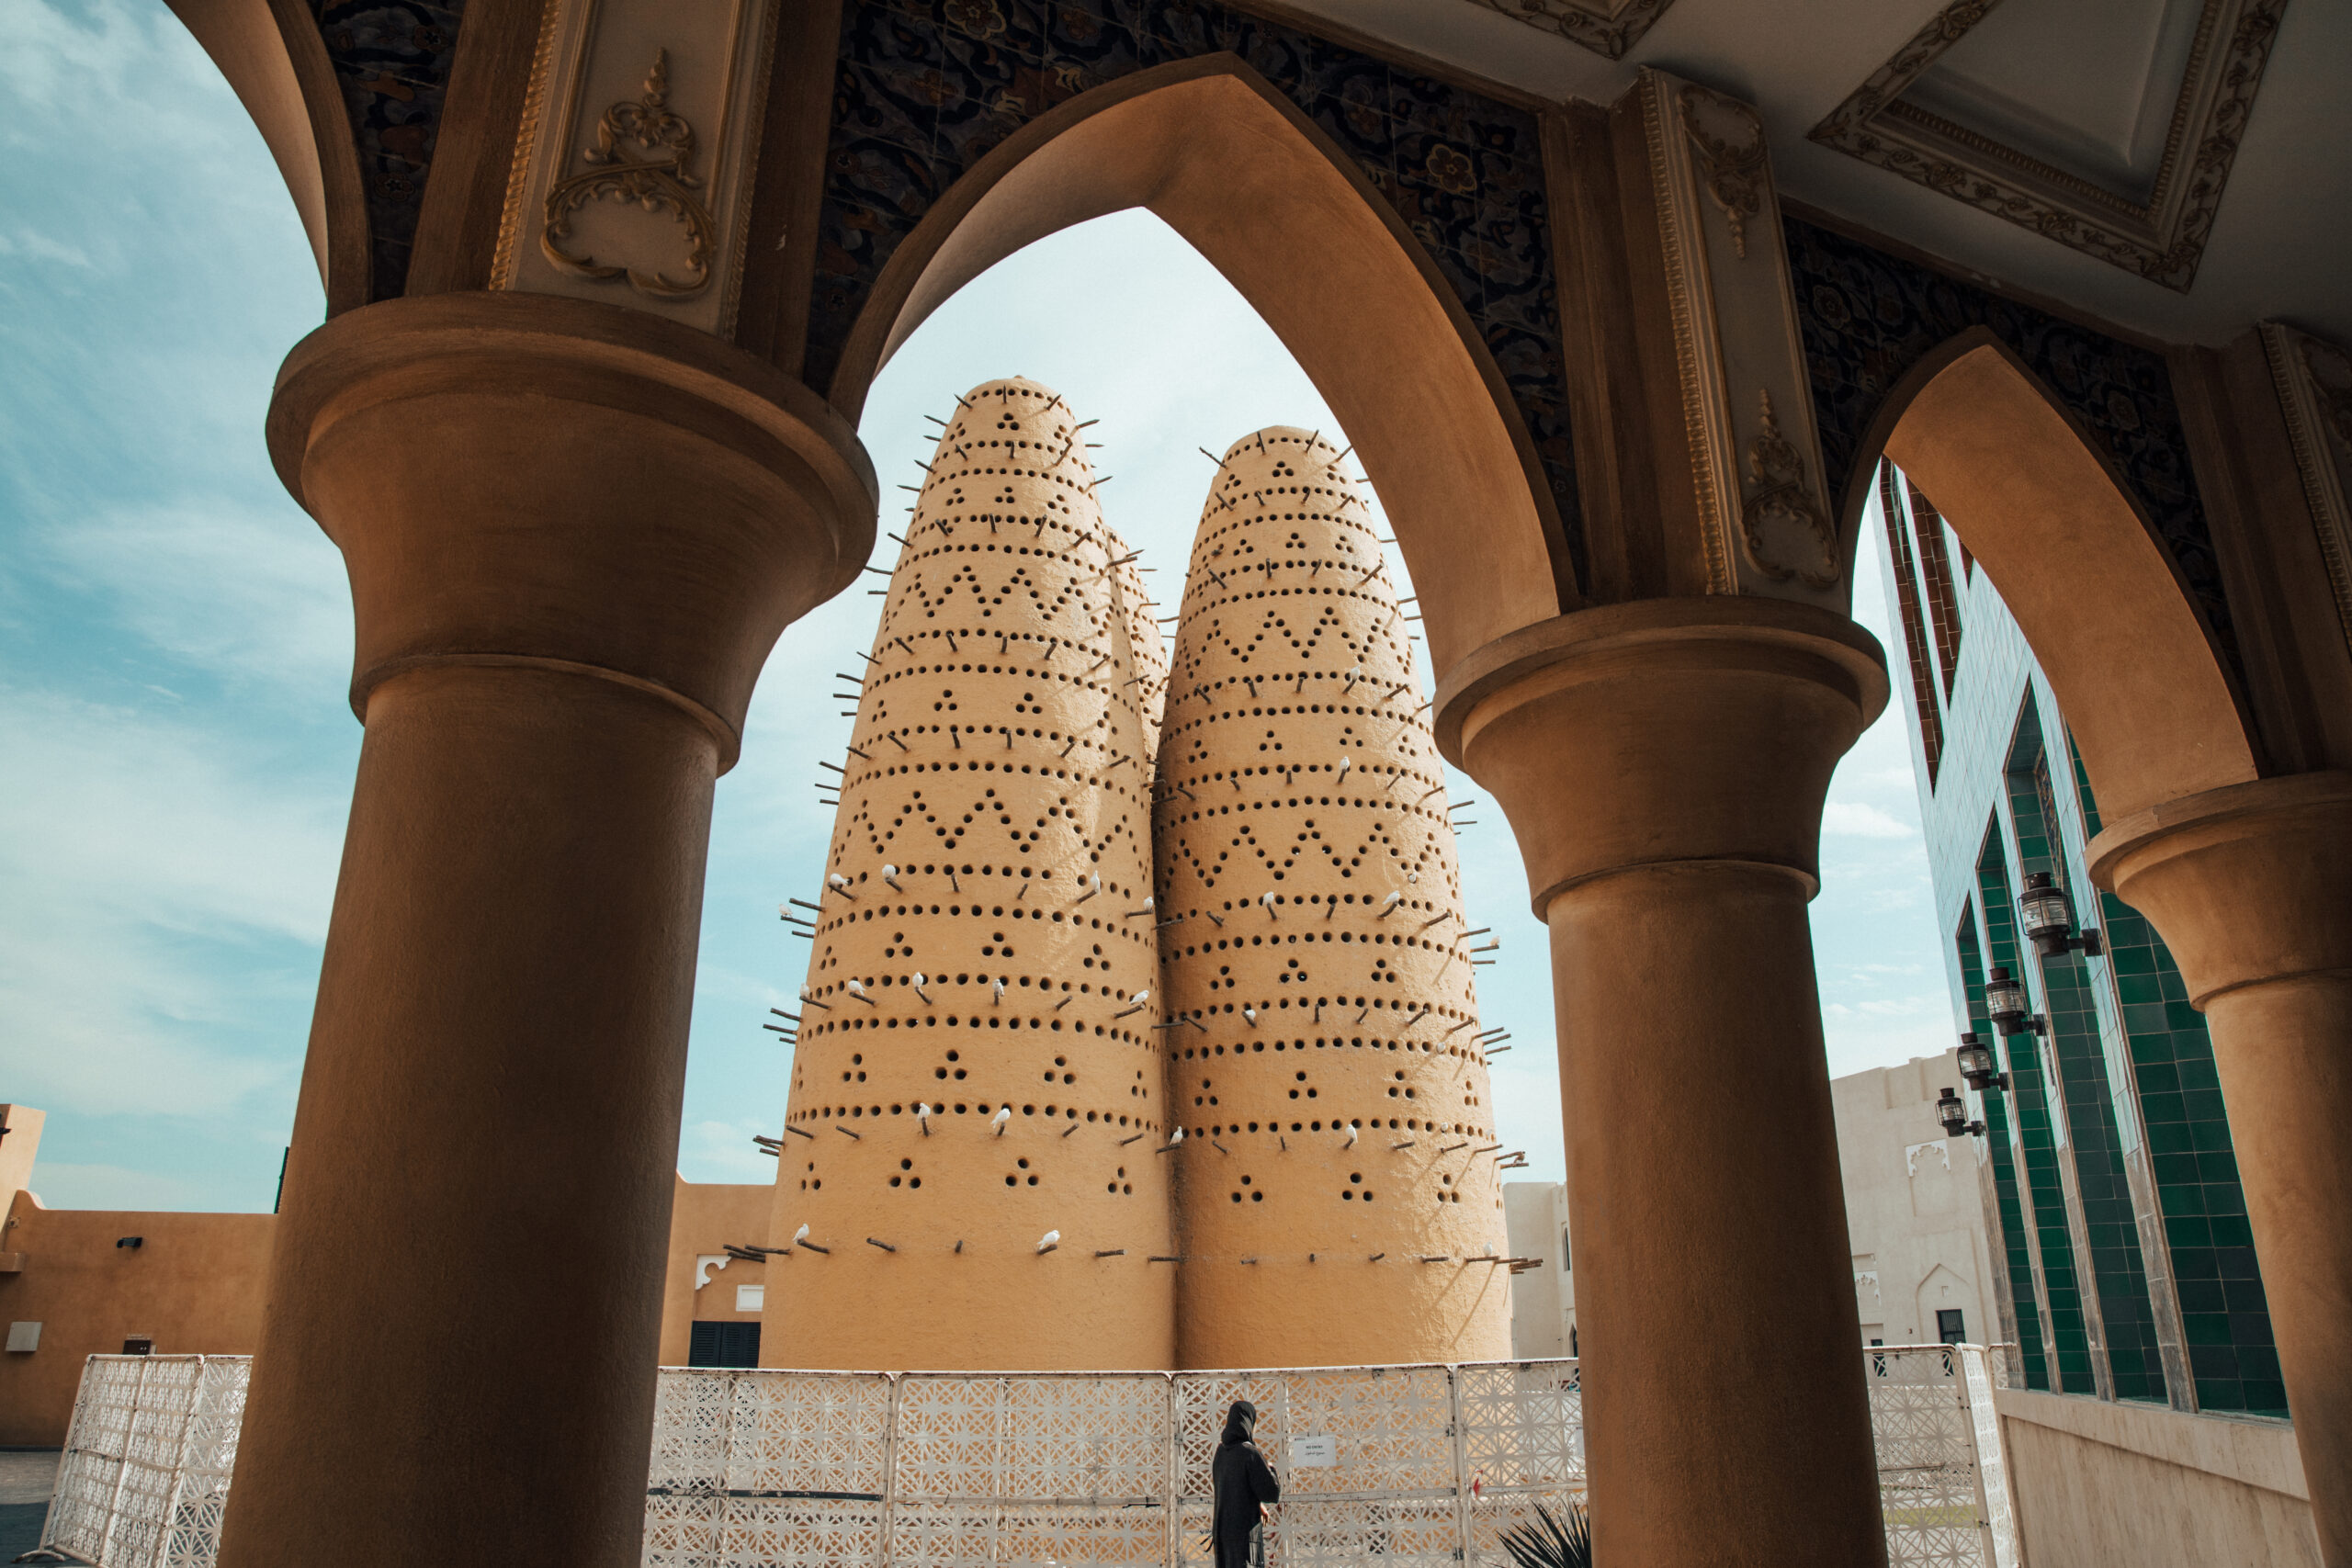 Pigeon towers of the Katara cultural village in Doha,Qatar framed through an arch. Katara is located on the eastern coast between West Bay District and the Pearl-Qatar [Shutterstock]